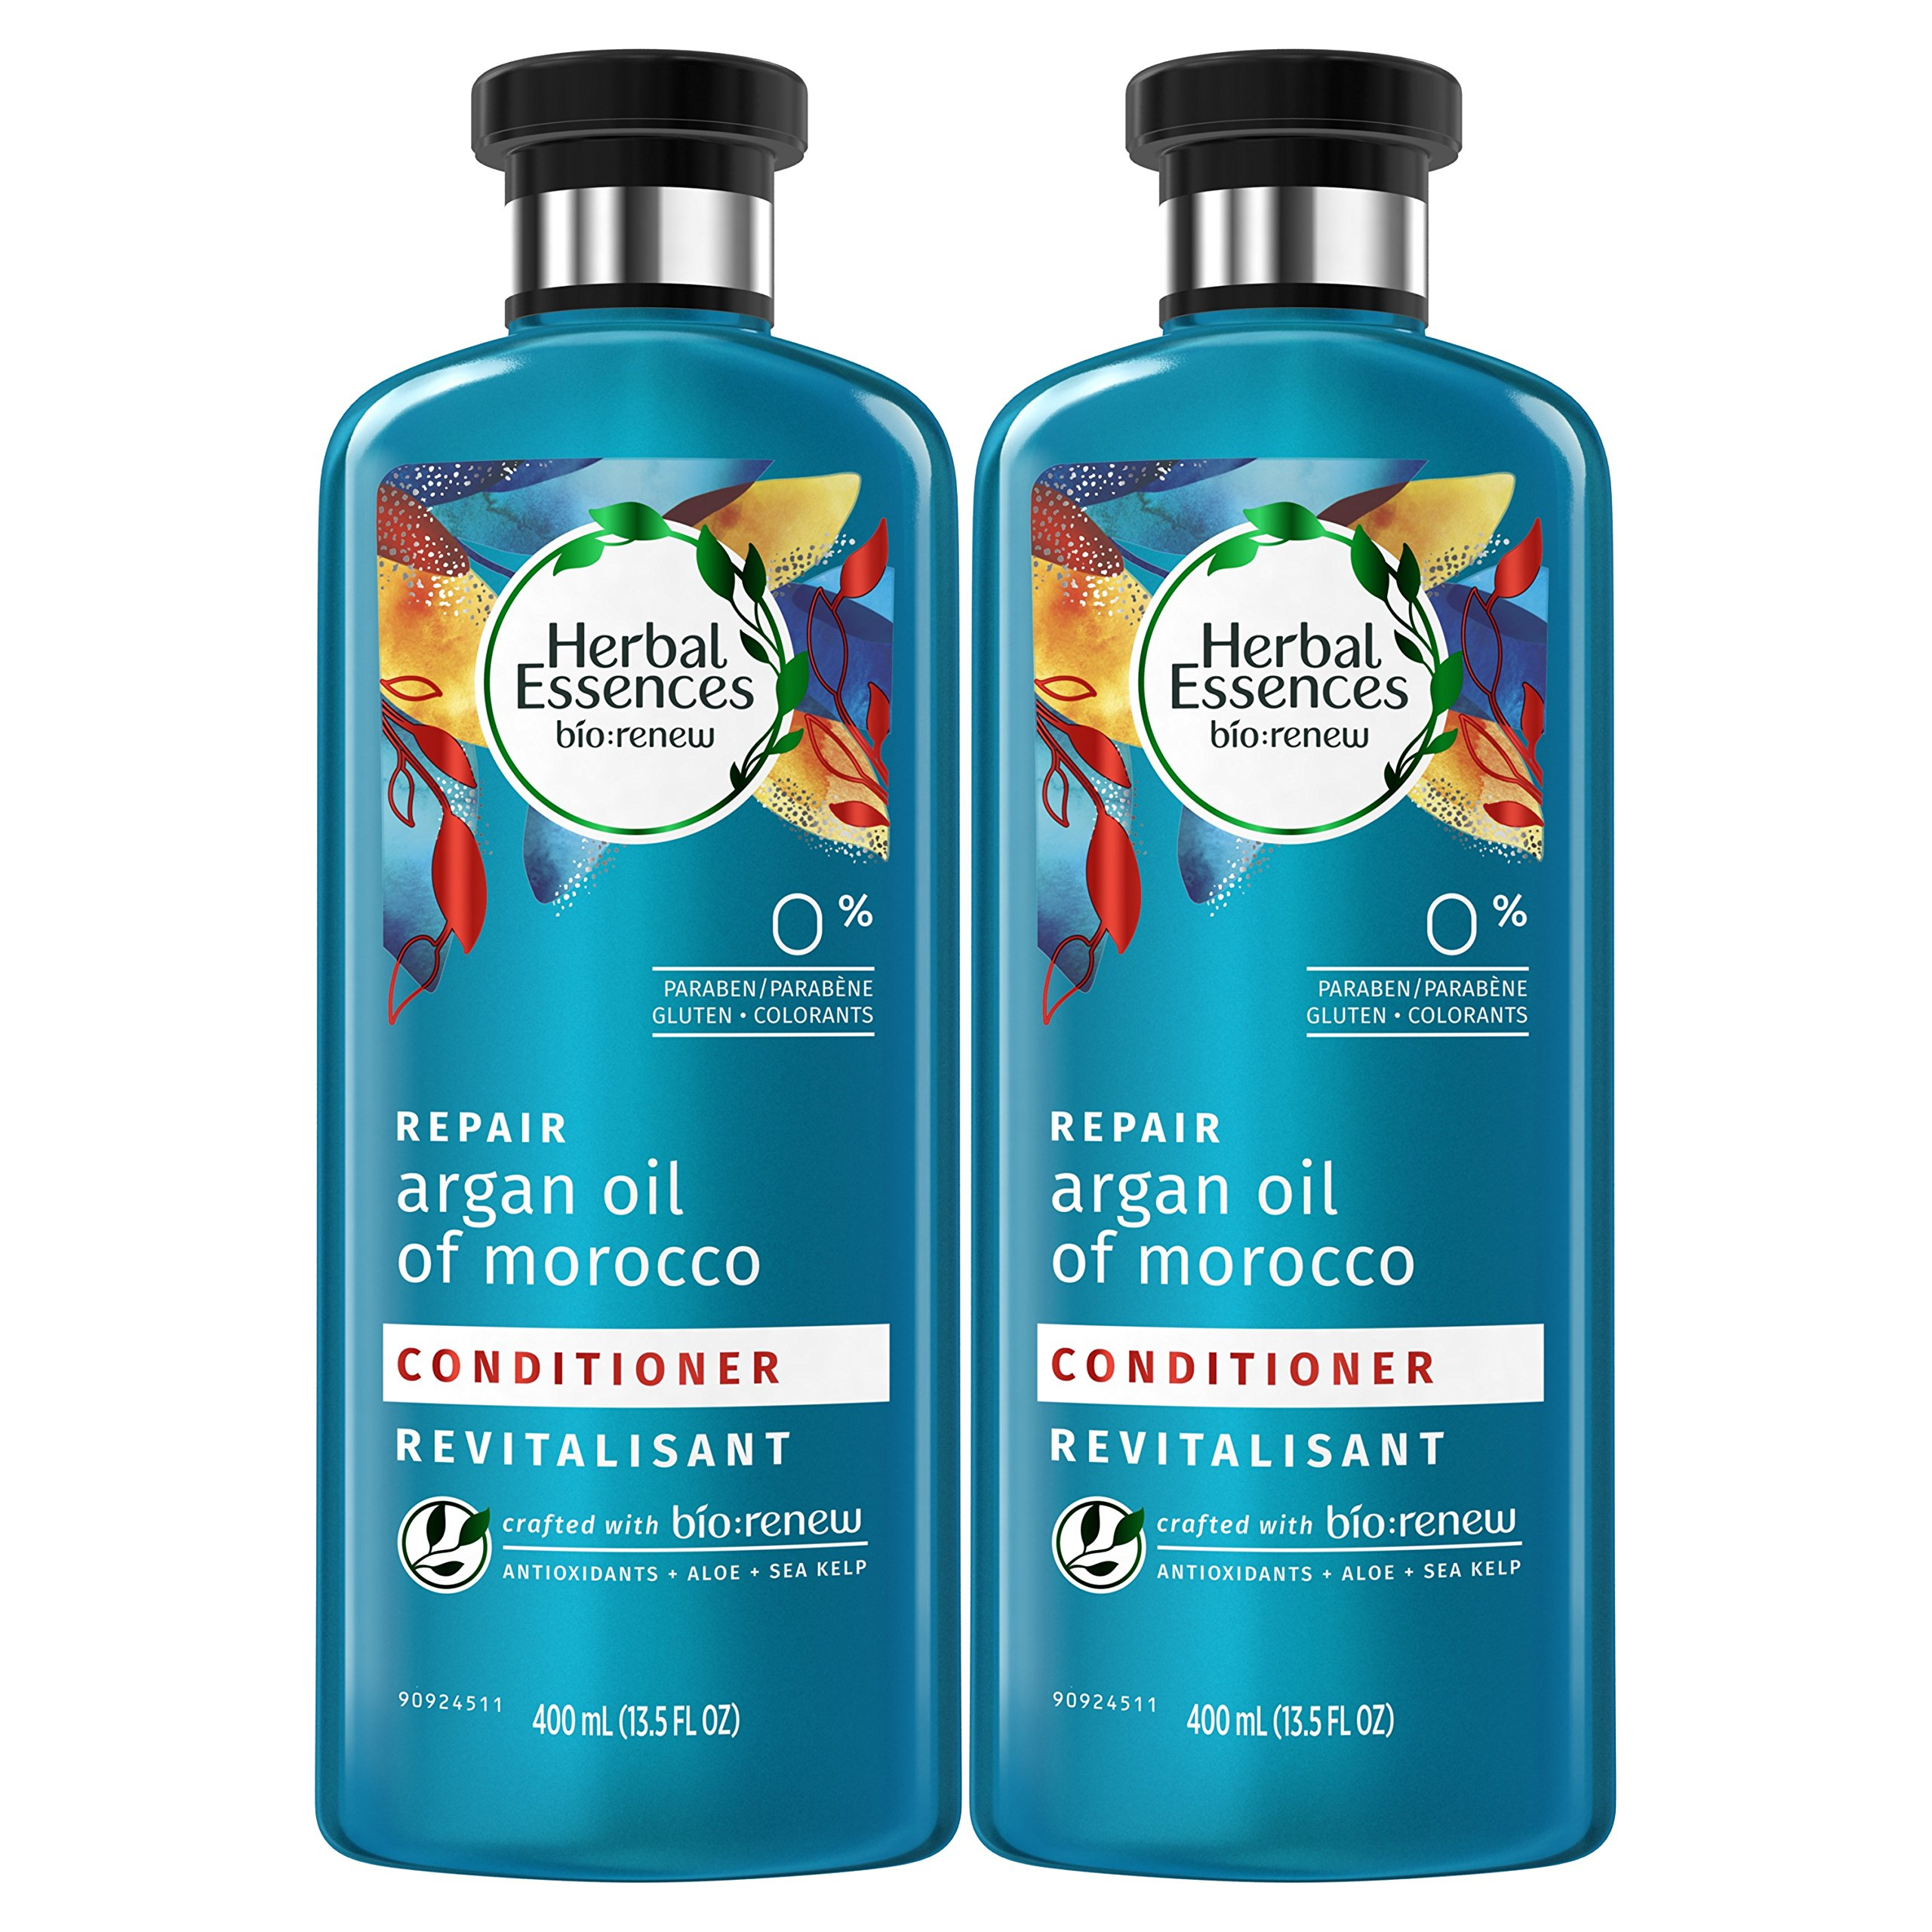 Herbal Essences Argan Oil Conditioner, 13.5 Fluid Ounces Paraben Free (Pack of 2) - Biorenew, Paraben Free